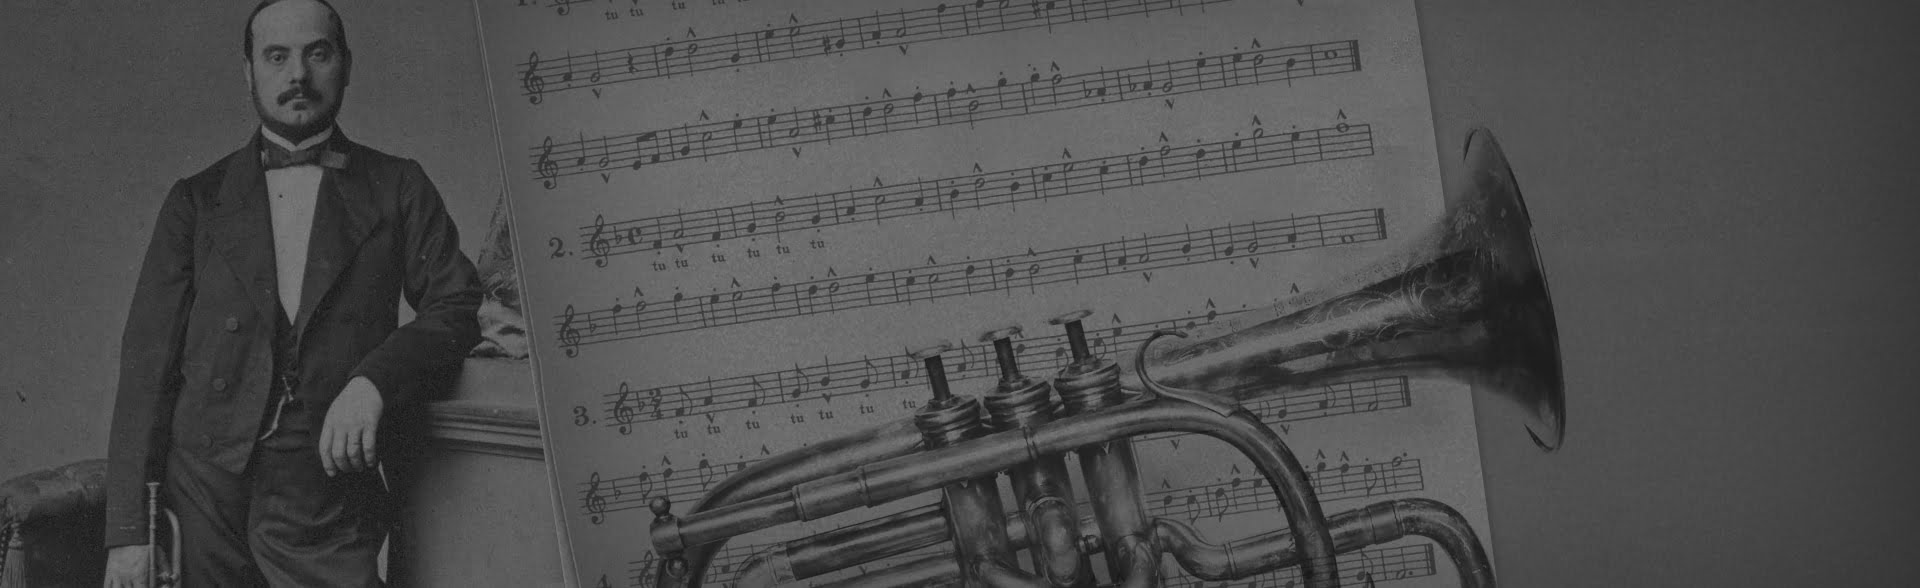 arban_LP_header